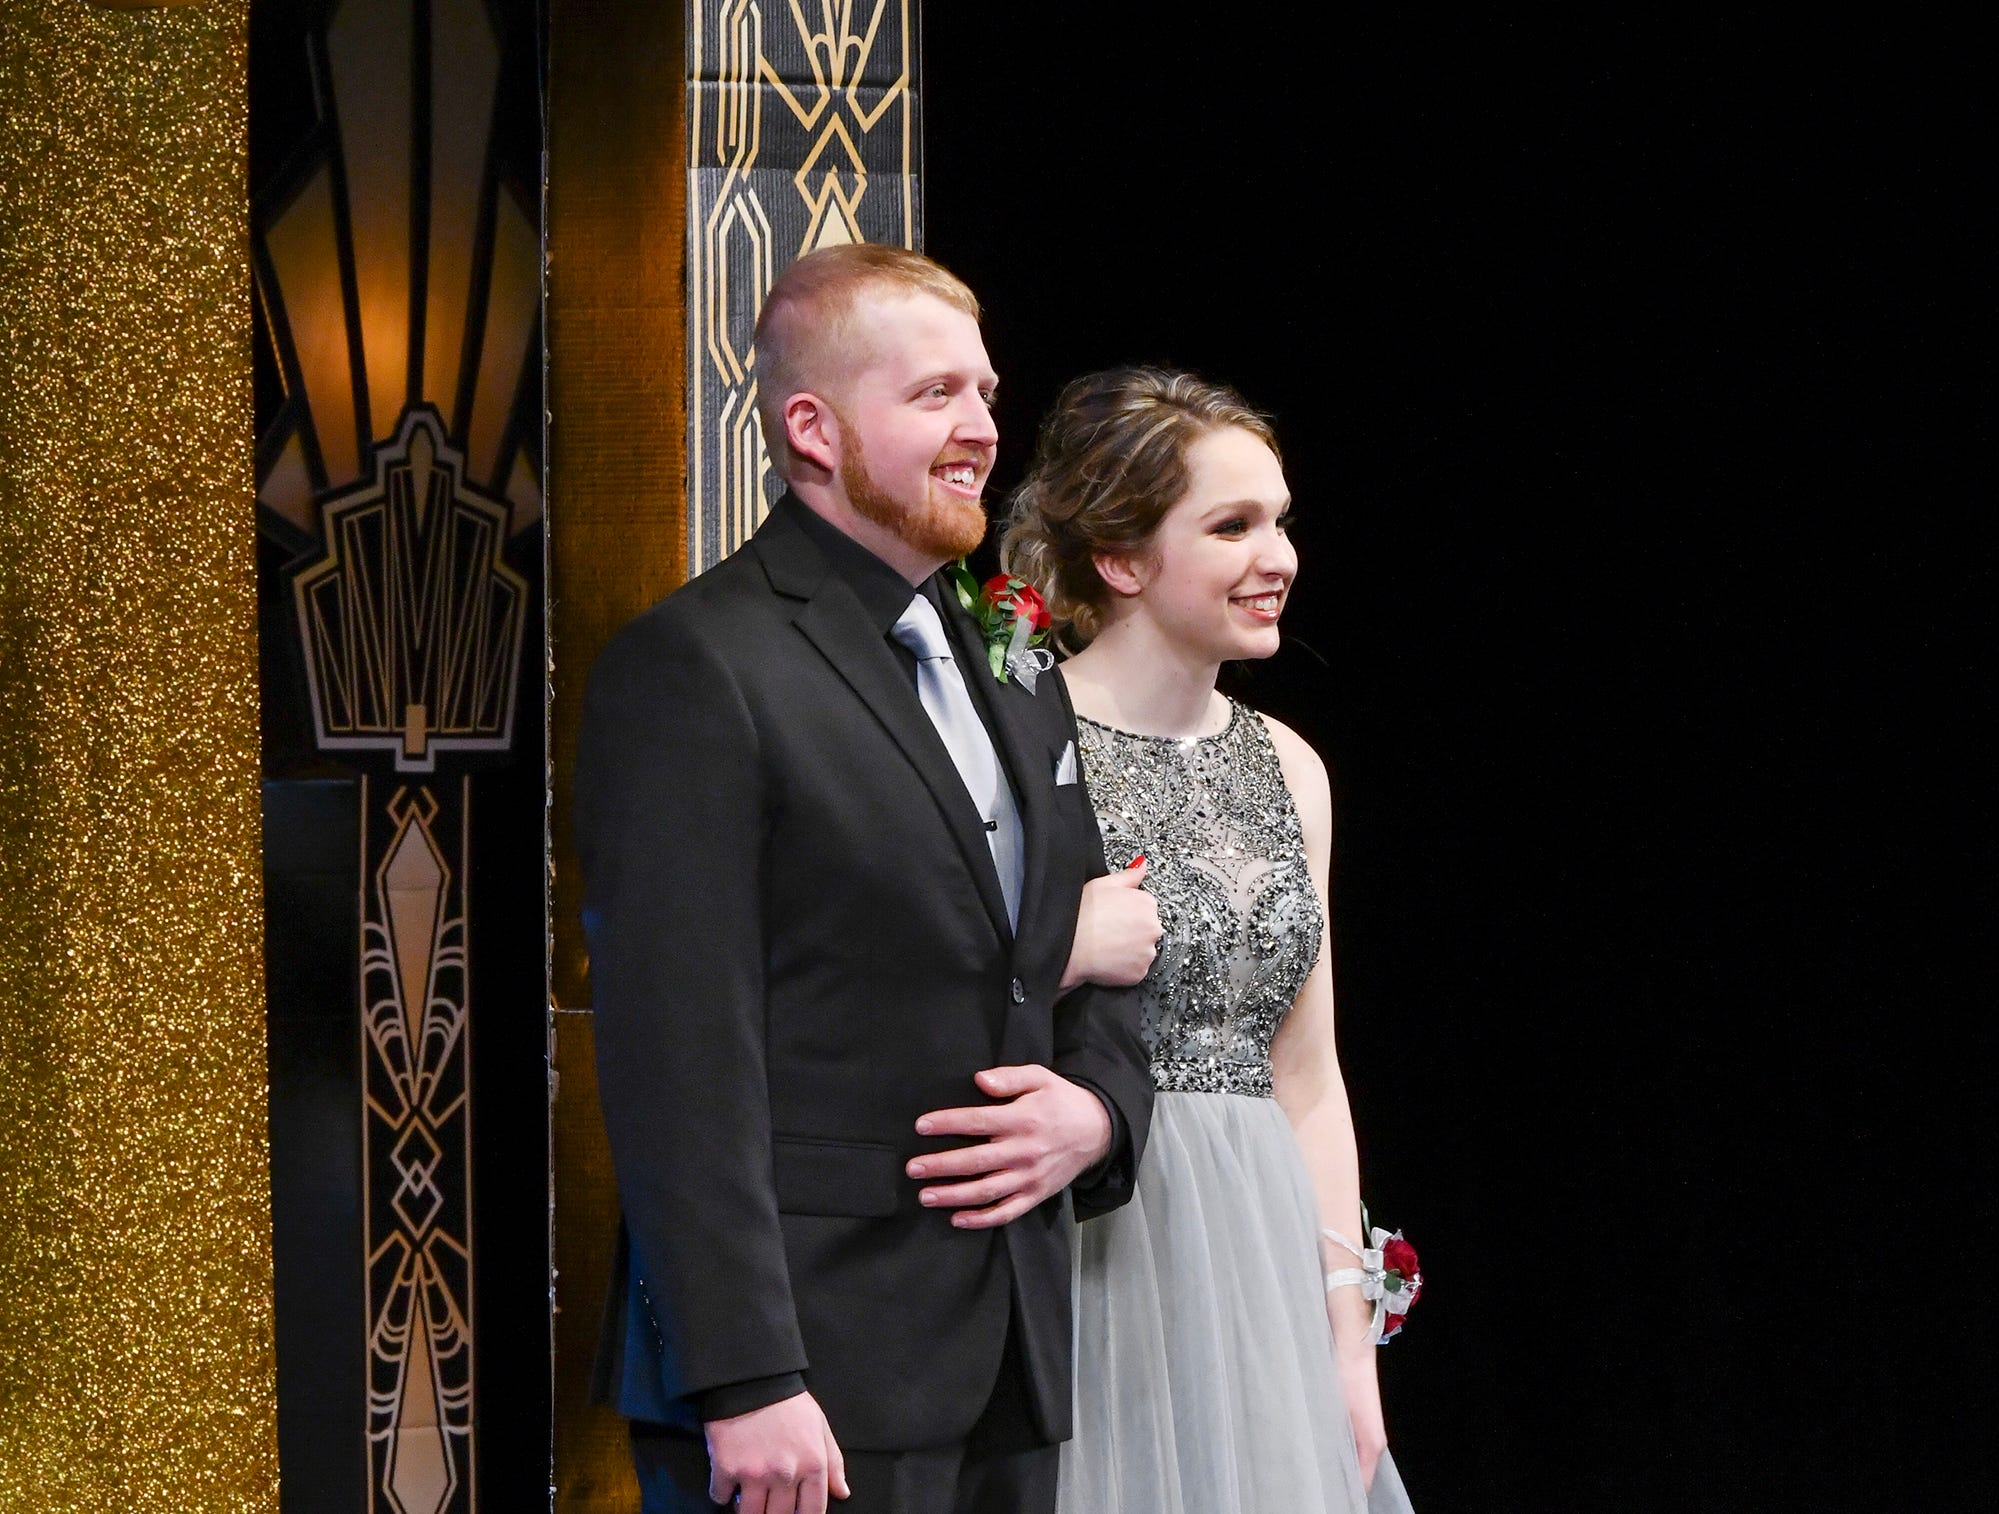 Megan Martini and Mitchell Klaphake smile during prom grand march Saturday, April 6, at Albany High School.